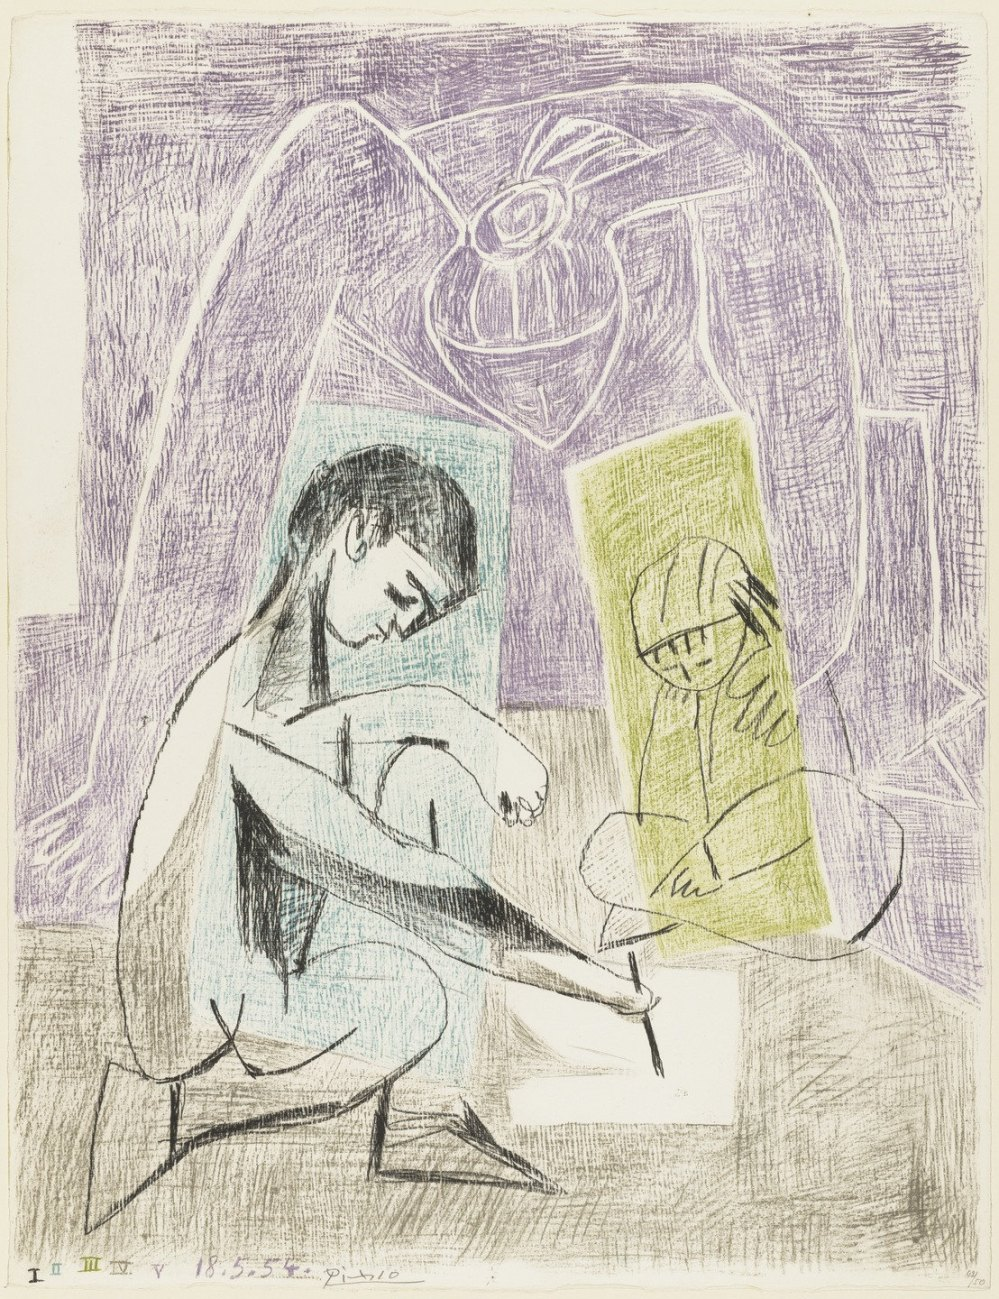 Little Artist, Picasso 1954